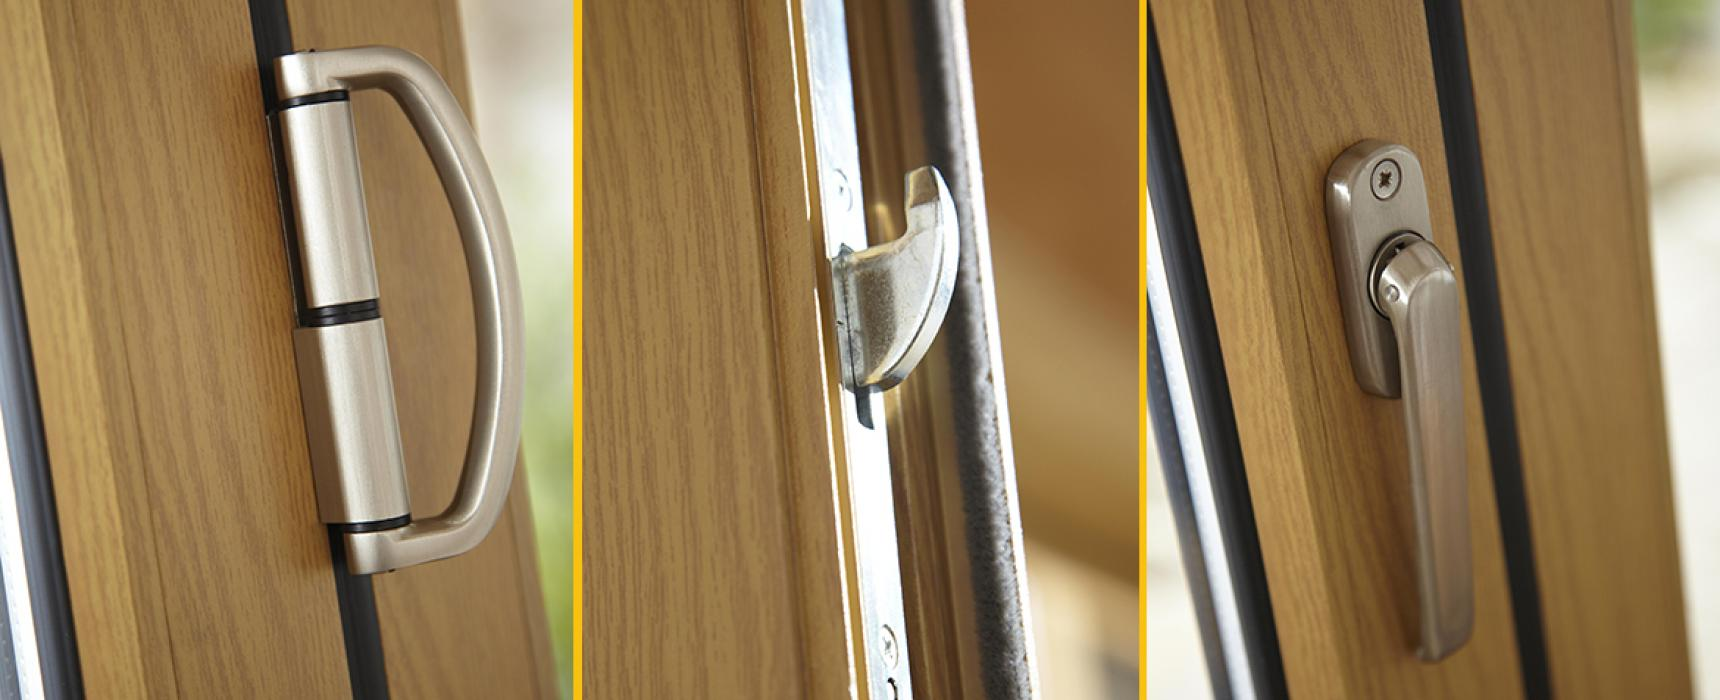 Origin Hardware, Handle, On A Wood Grain Effect Aluminium Bi Folding Door